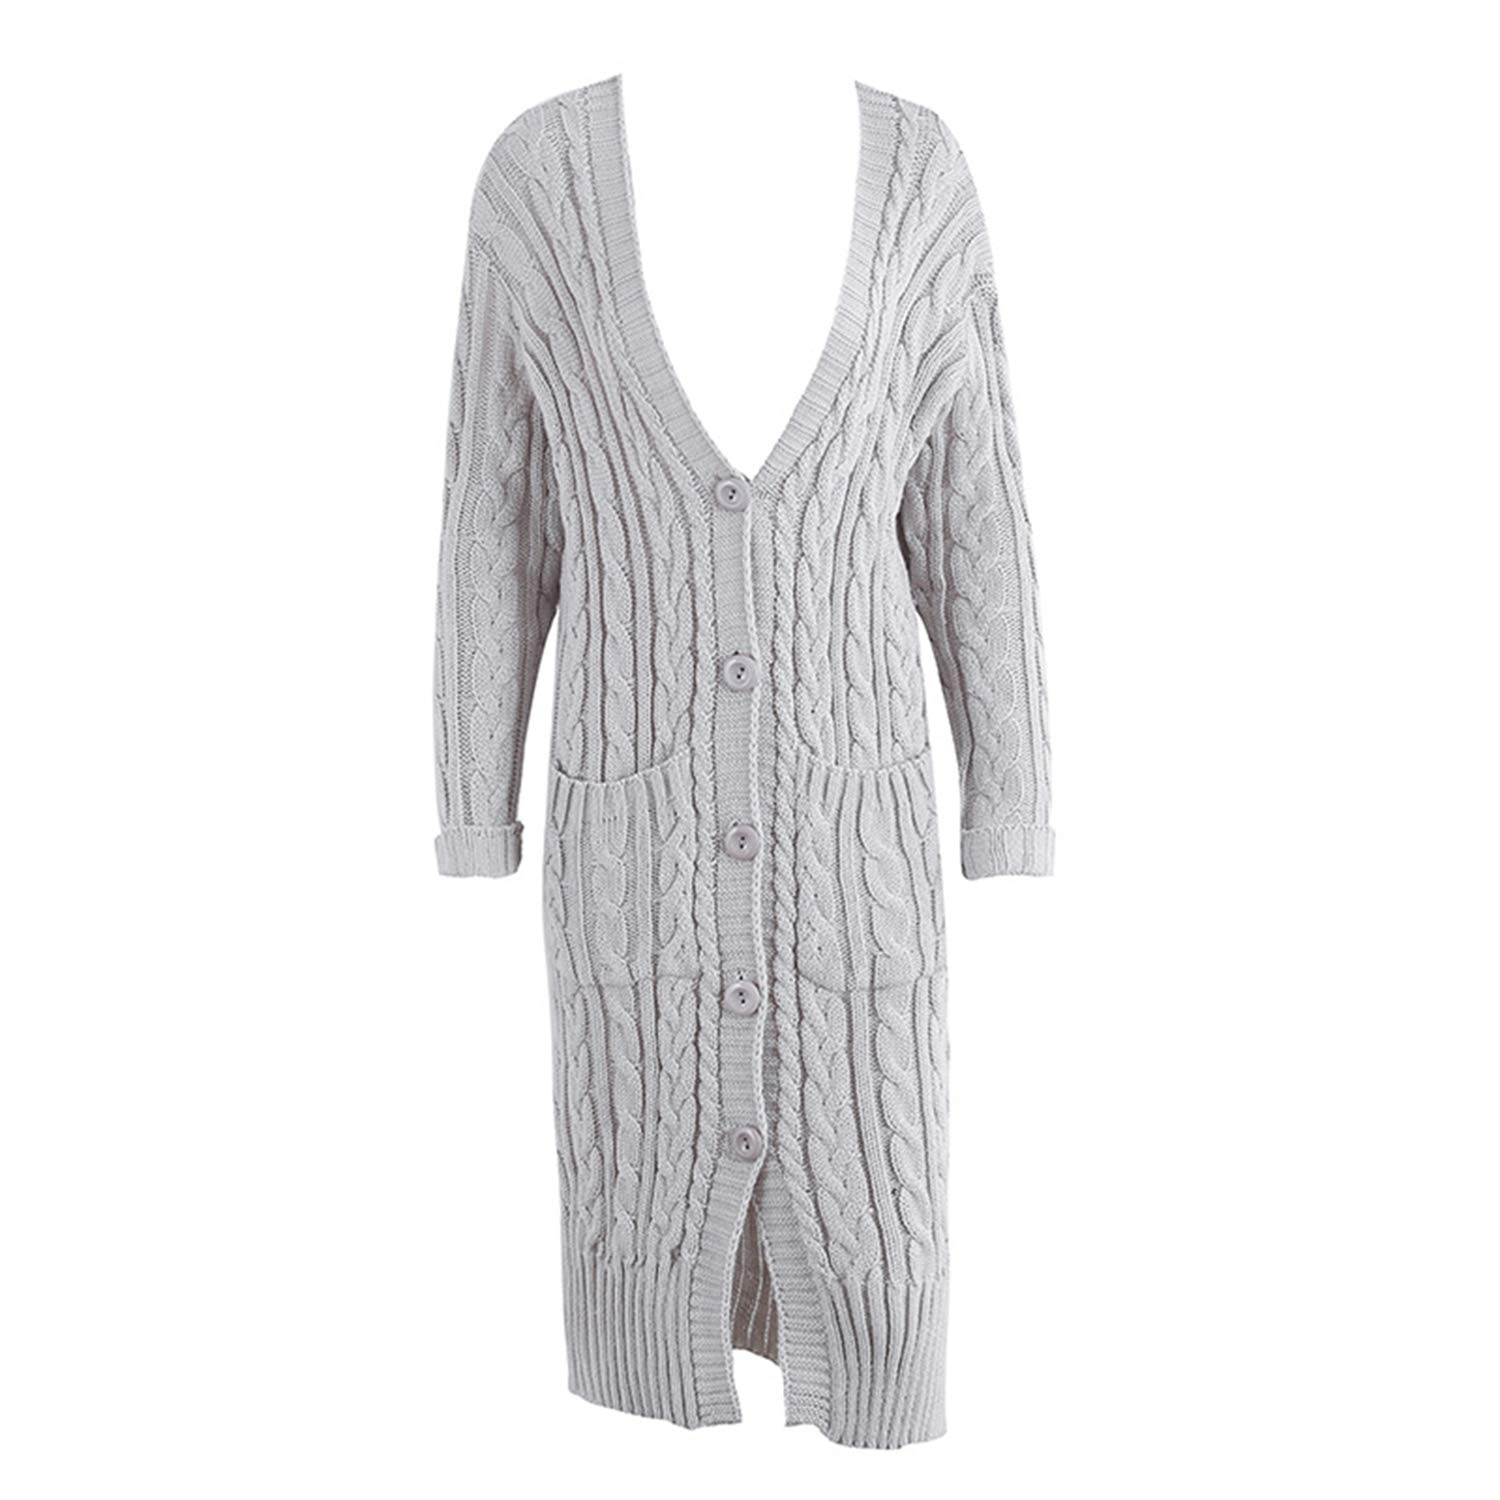 Women V Neck Knitted Long Cardigan Autumn Winter Sweater with Pockets Outerwear